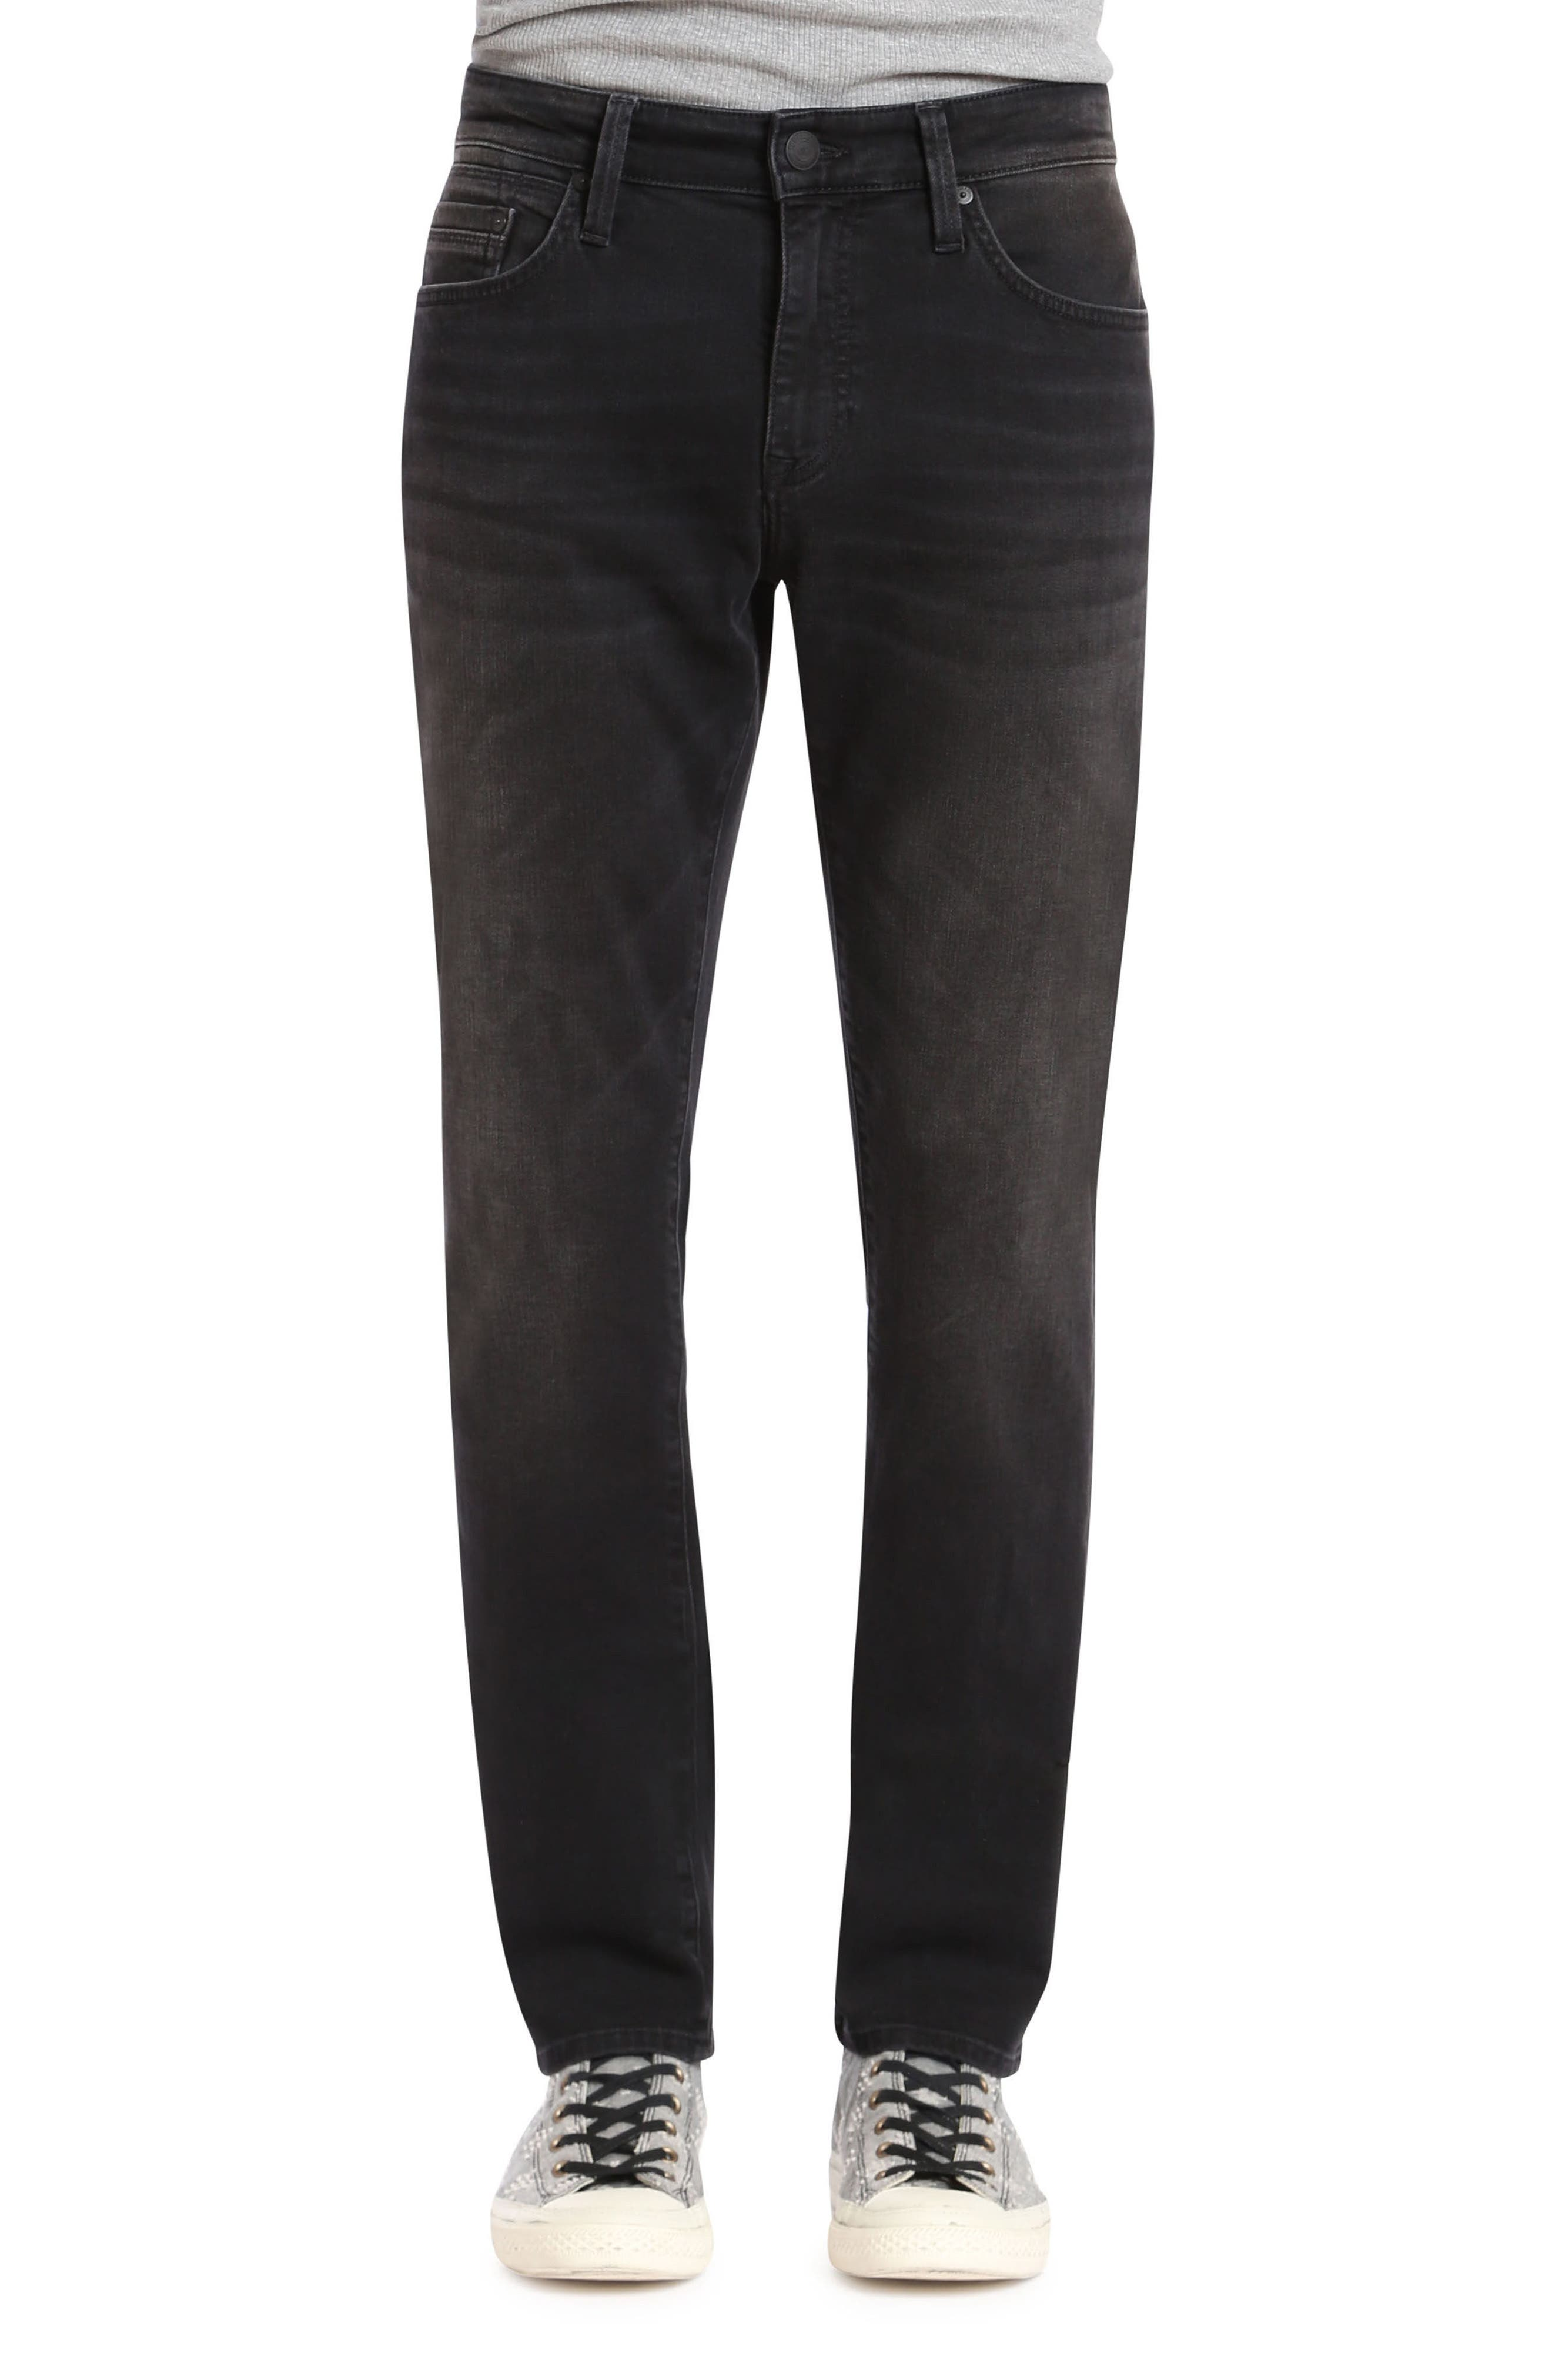 Marcus Slim Straight Leg Jeans,                         Main,                         color,